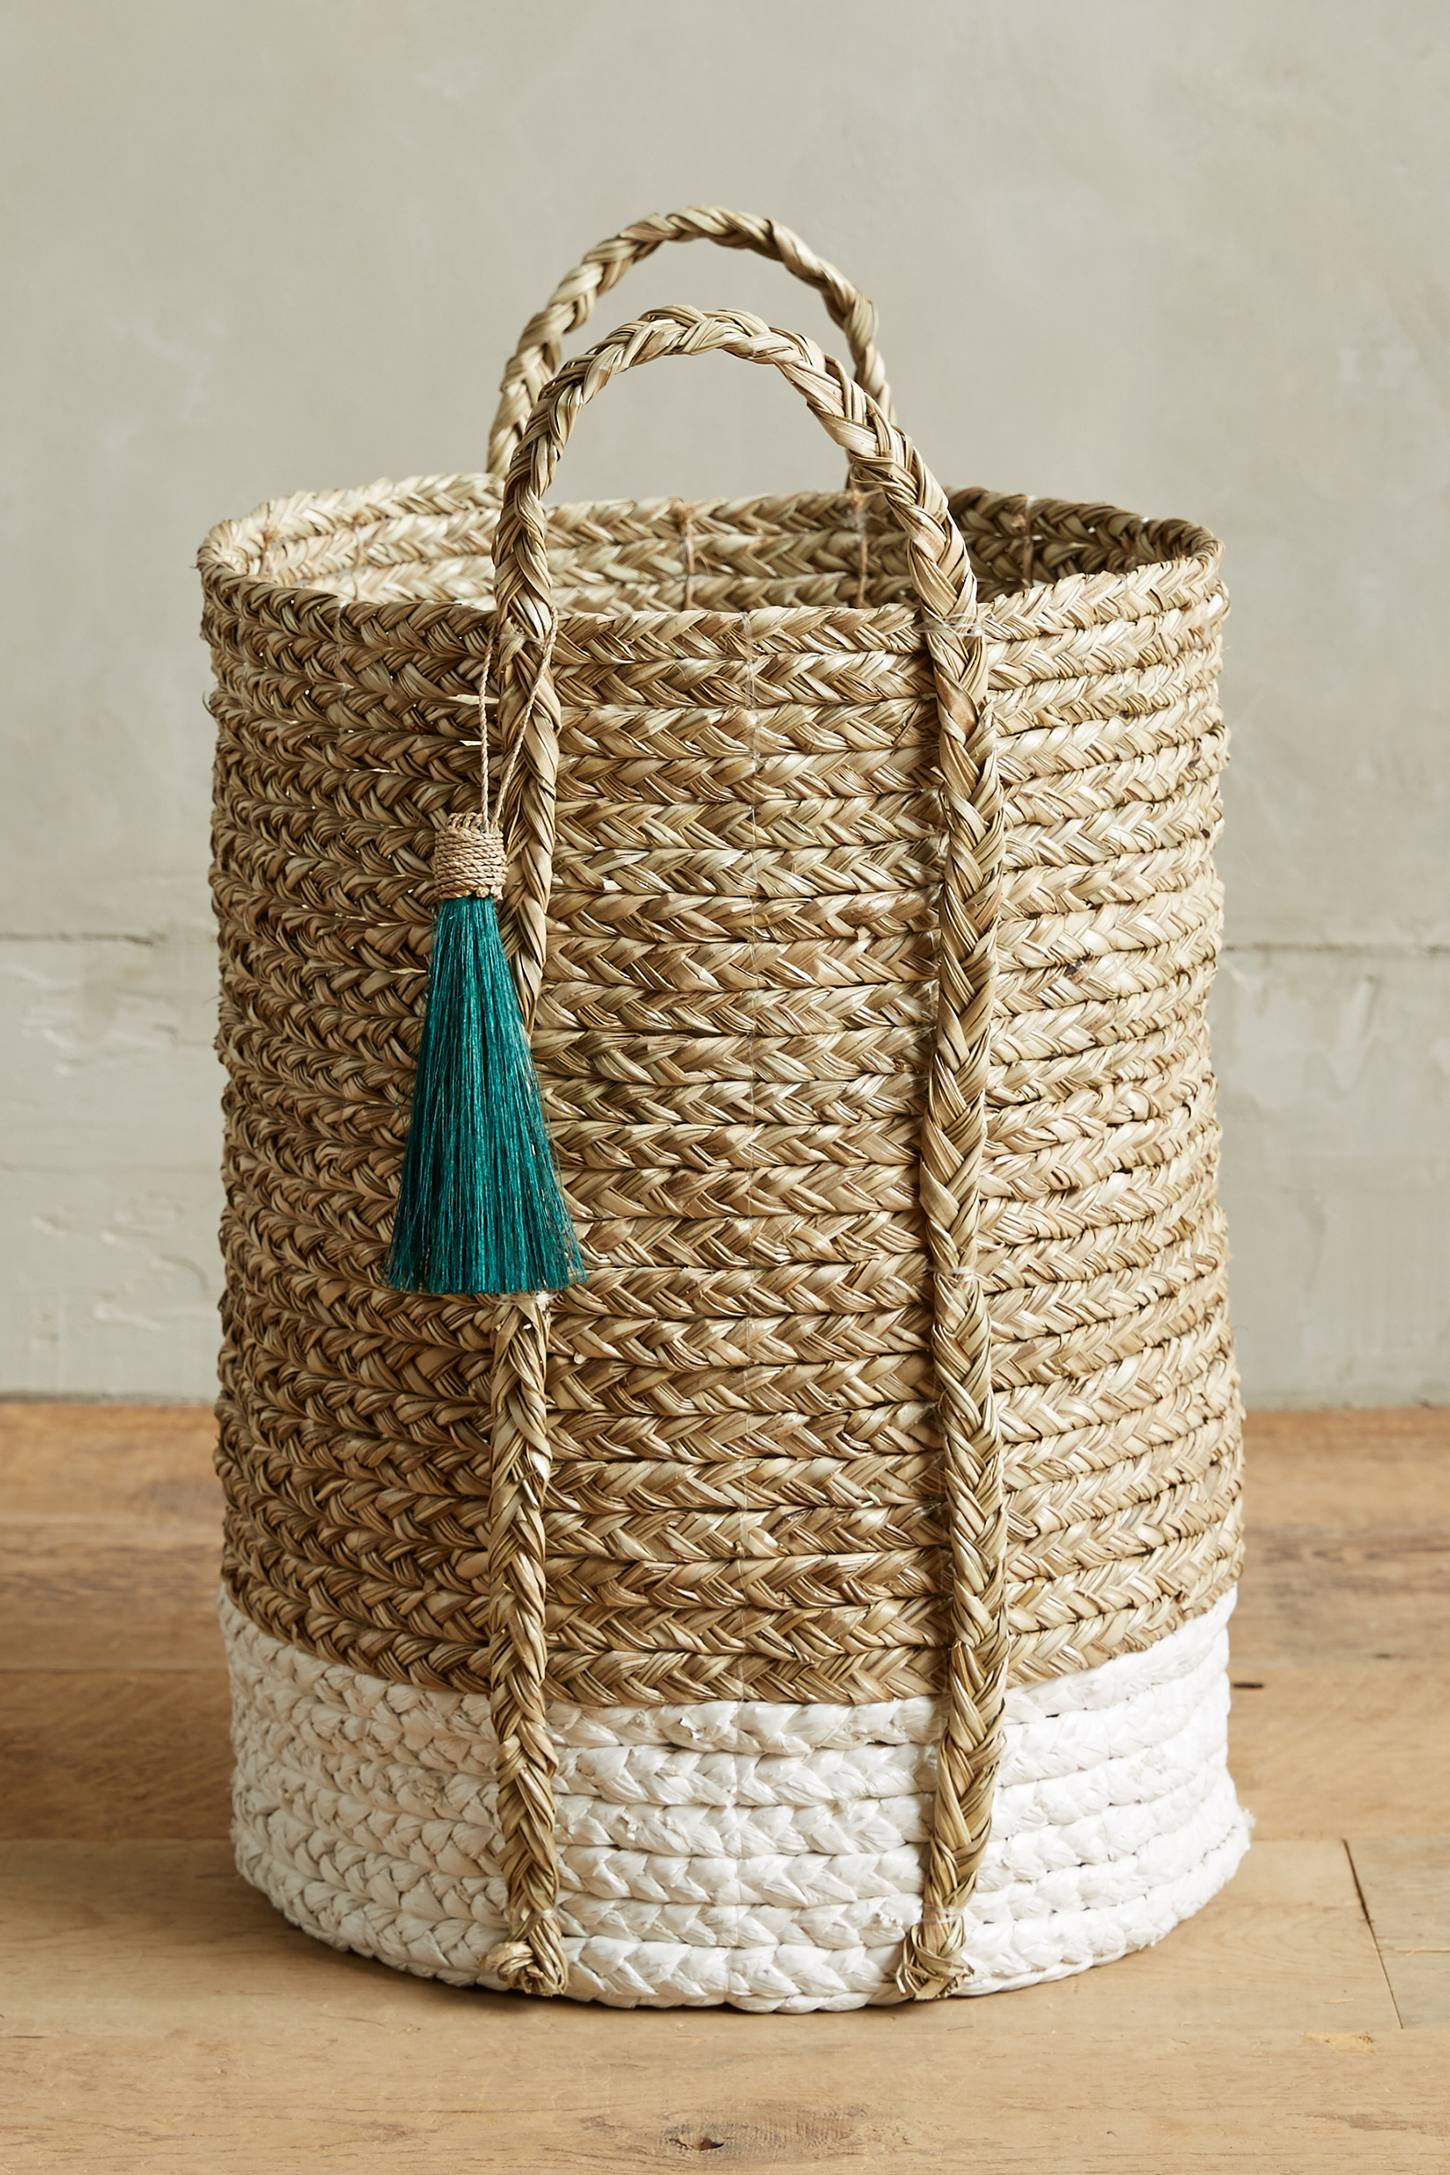 Cool Laundry Hamper 20 Laundry Basket Designs That Make Household Chores Stylish